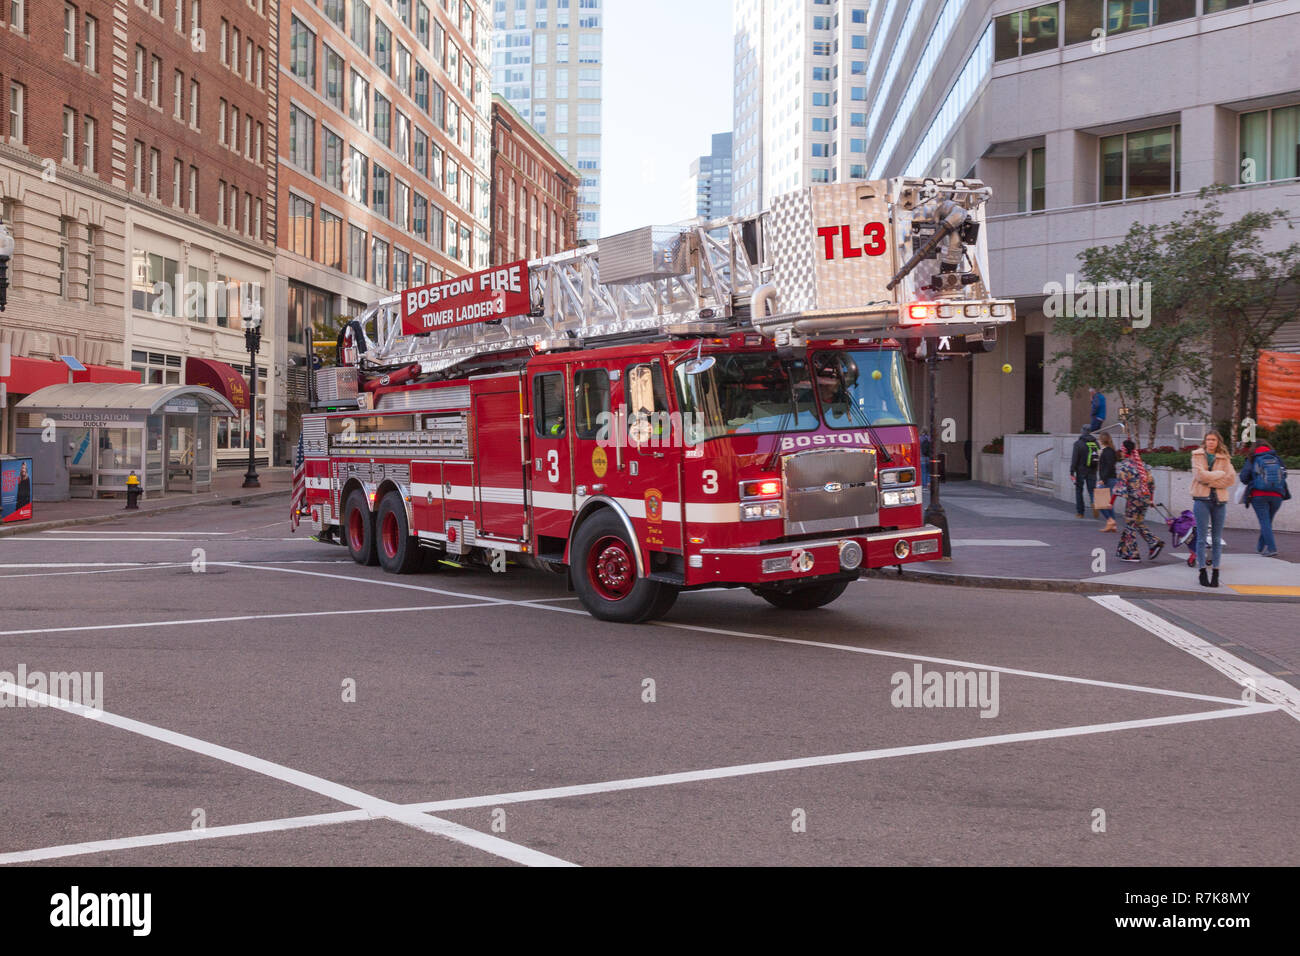 Boston Fire Department Tower Ladder 3, Seaport District, Boston, Massachusetts, United States of America. - Stock Image